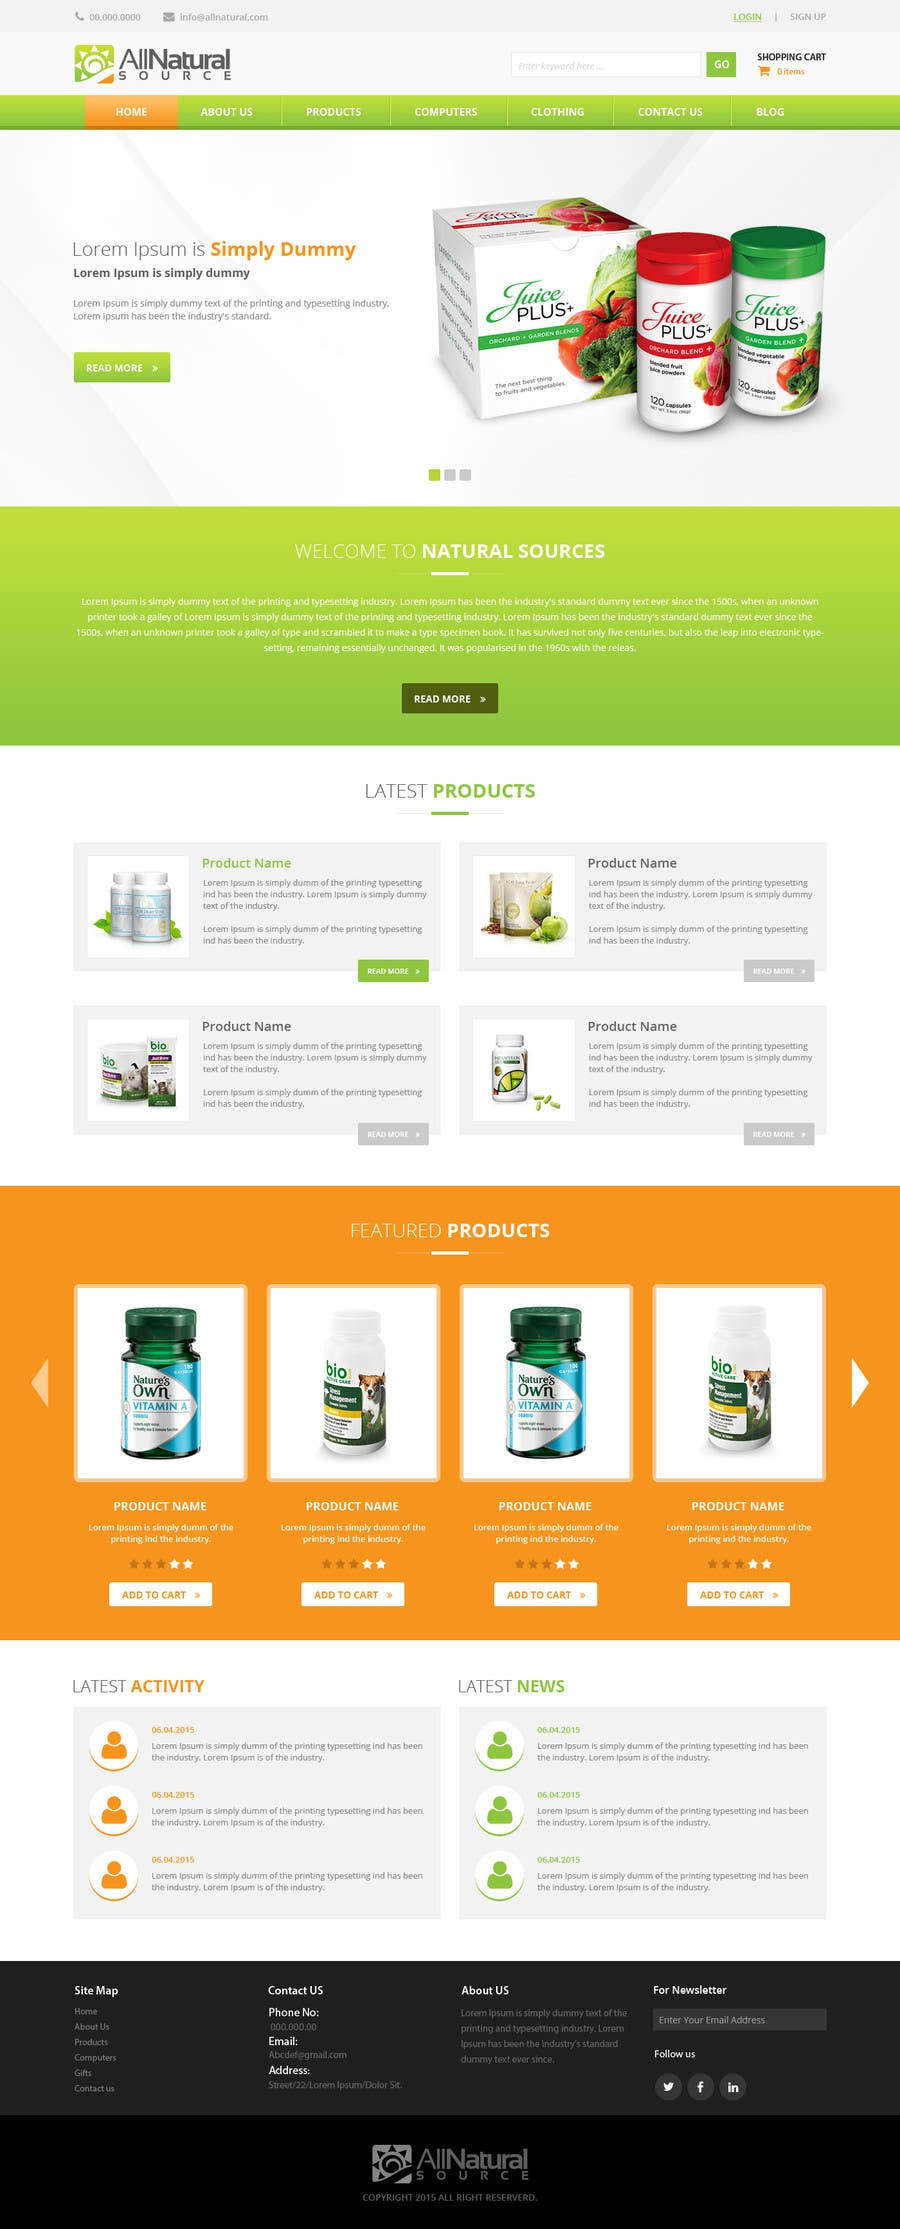 Contest Entry #                                        9                                      for                                         Design a Website Mockup for Natural Products E-Commerce Site